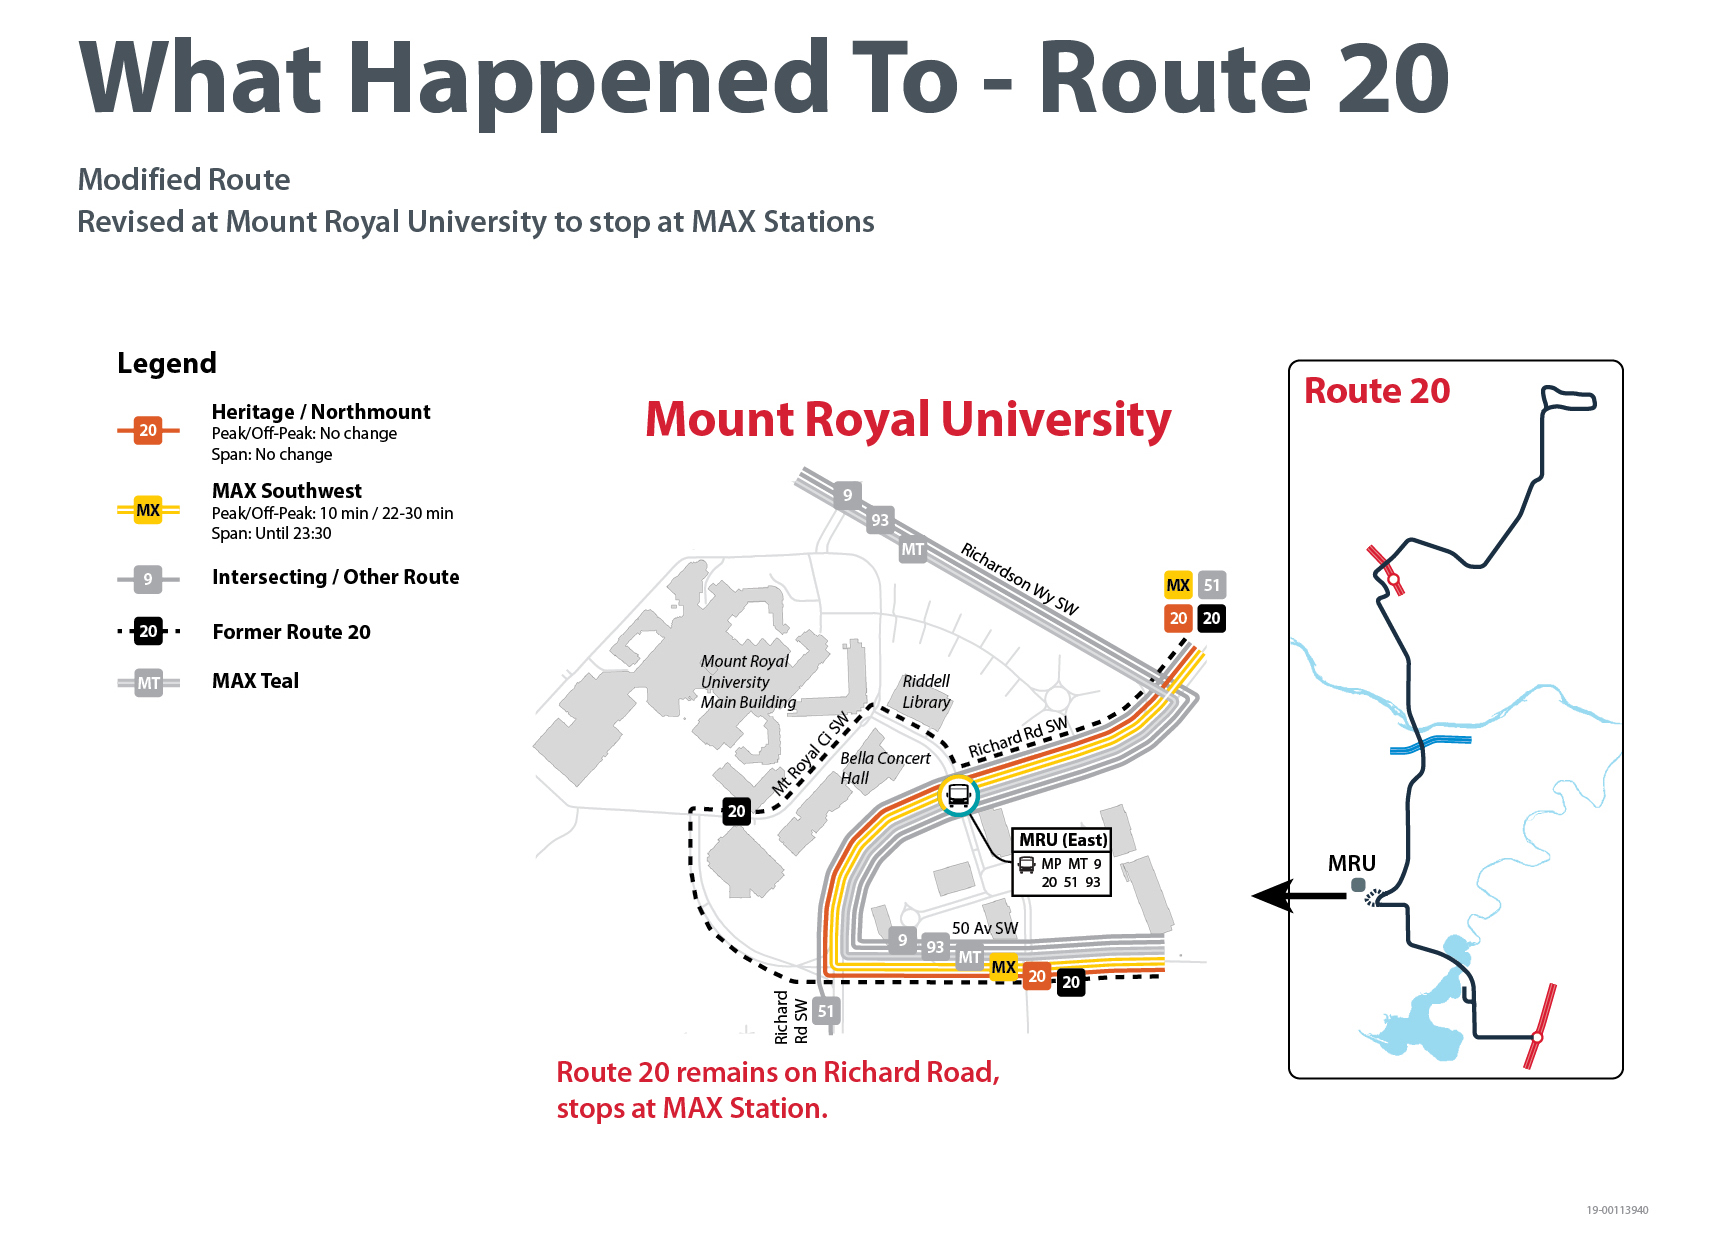 ​What Happened to Route 20